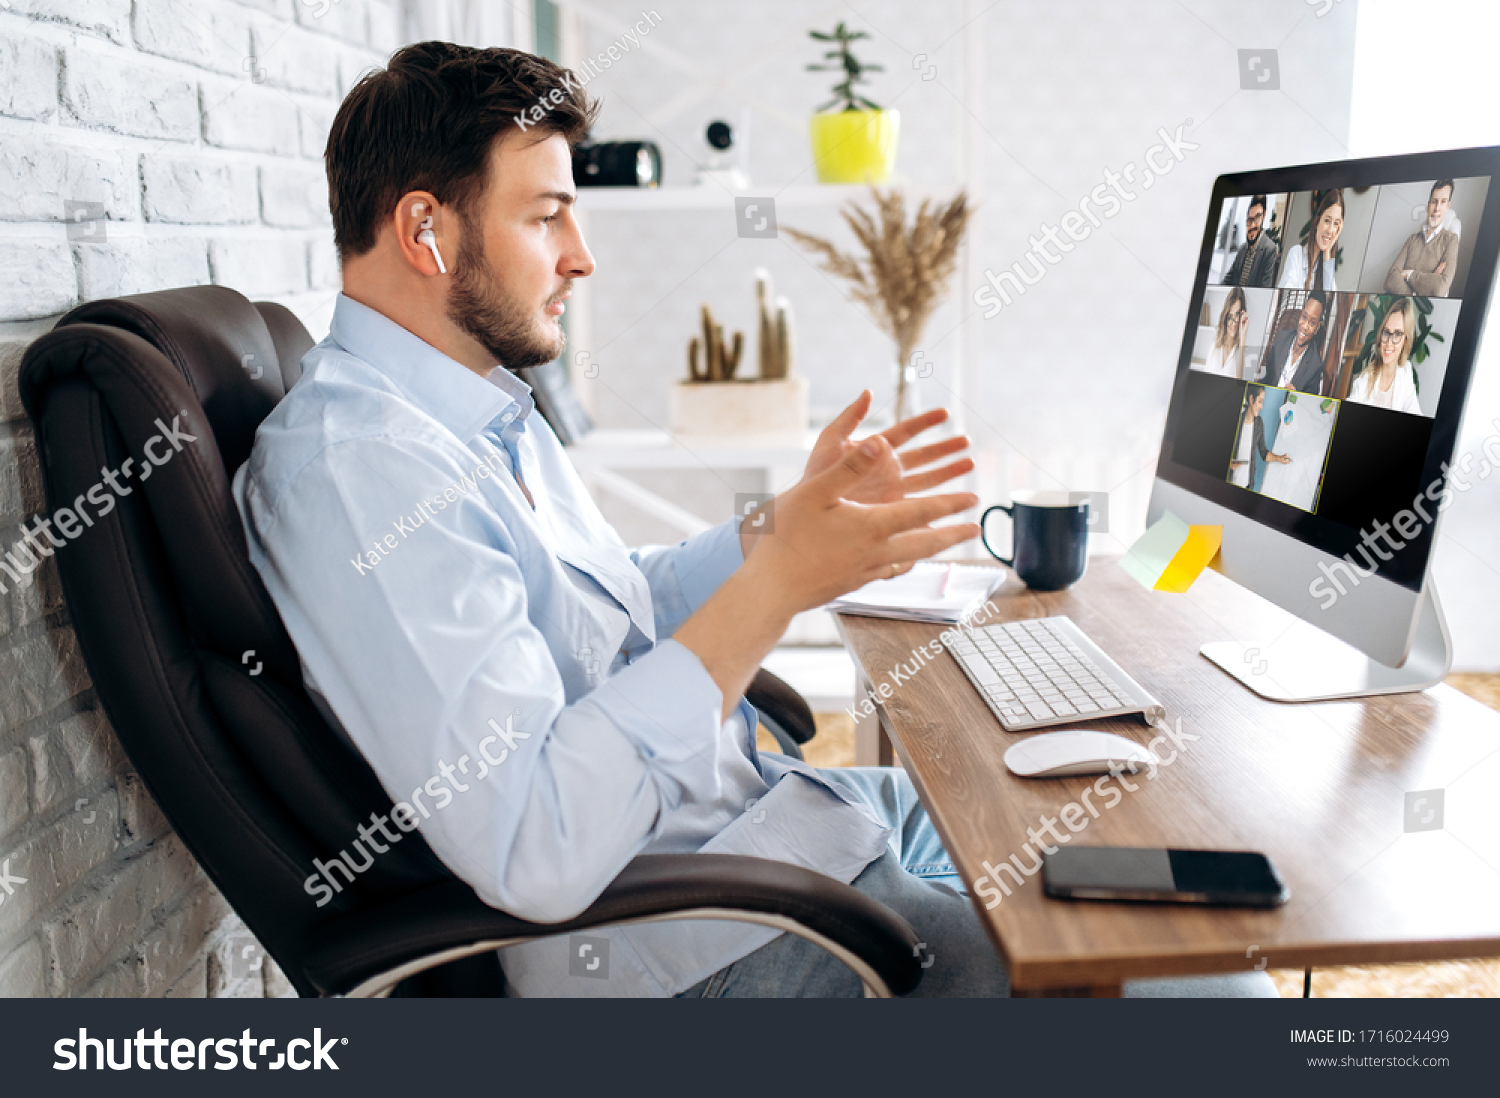 Zoom conference. Business partners communicate via video using laptop. The guy talks with his business partners appearance about plans and strategy. Distant work #1716024499